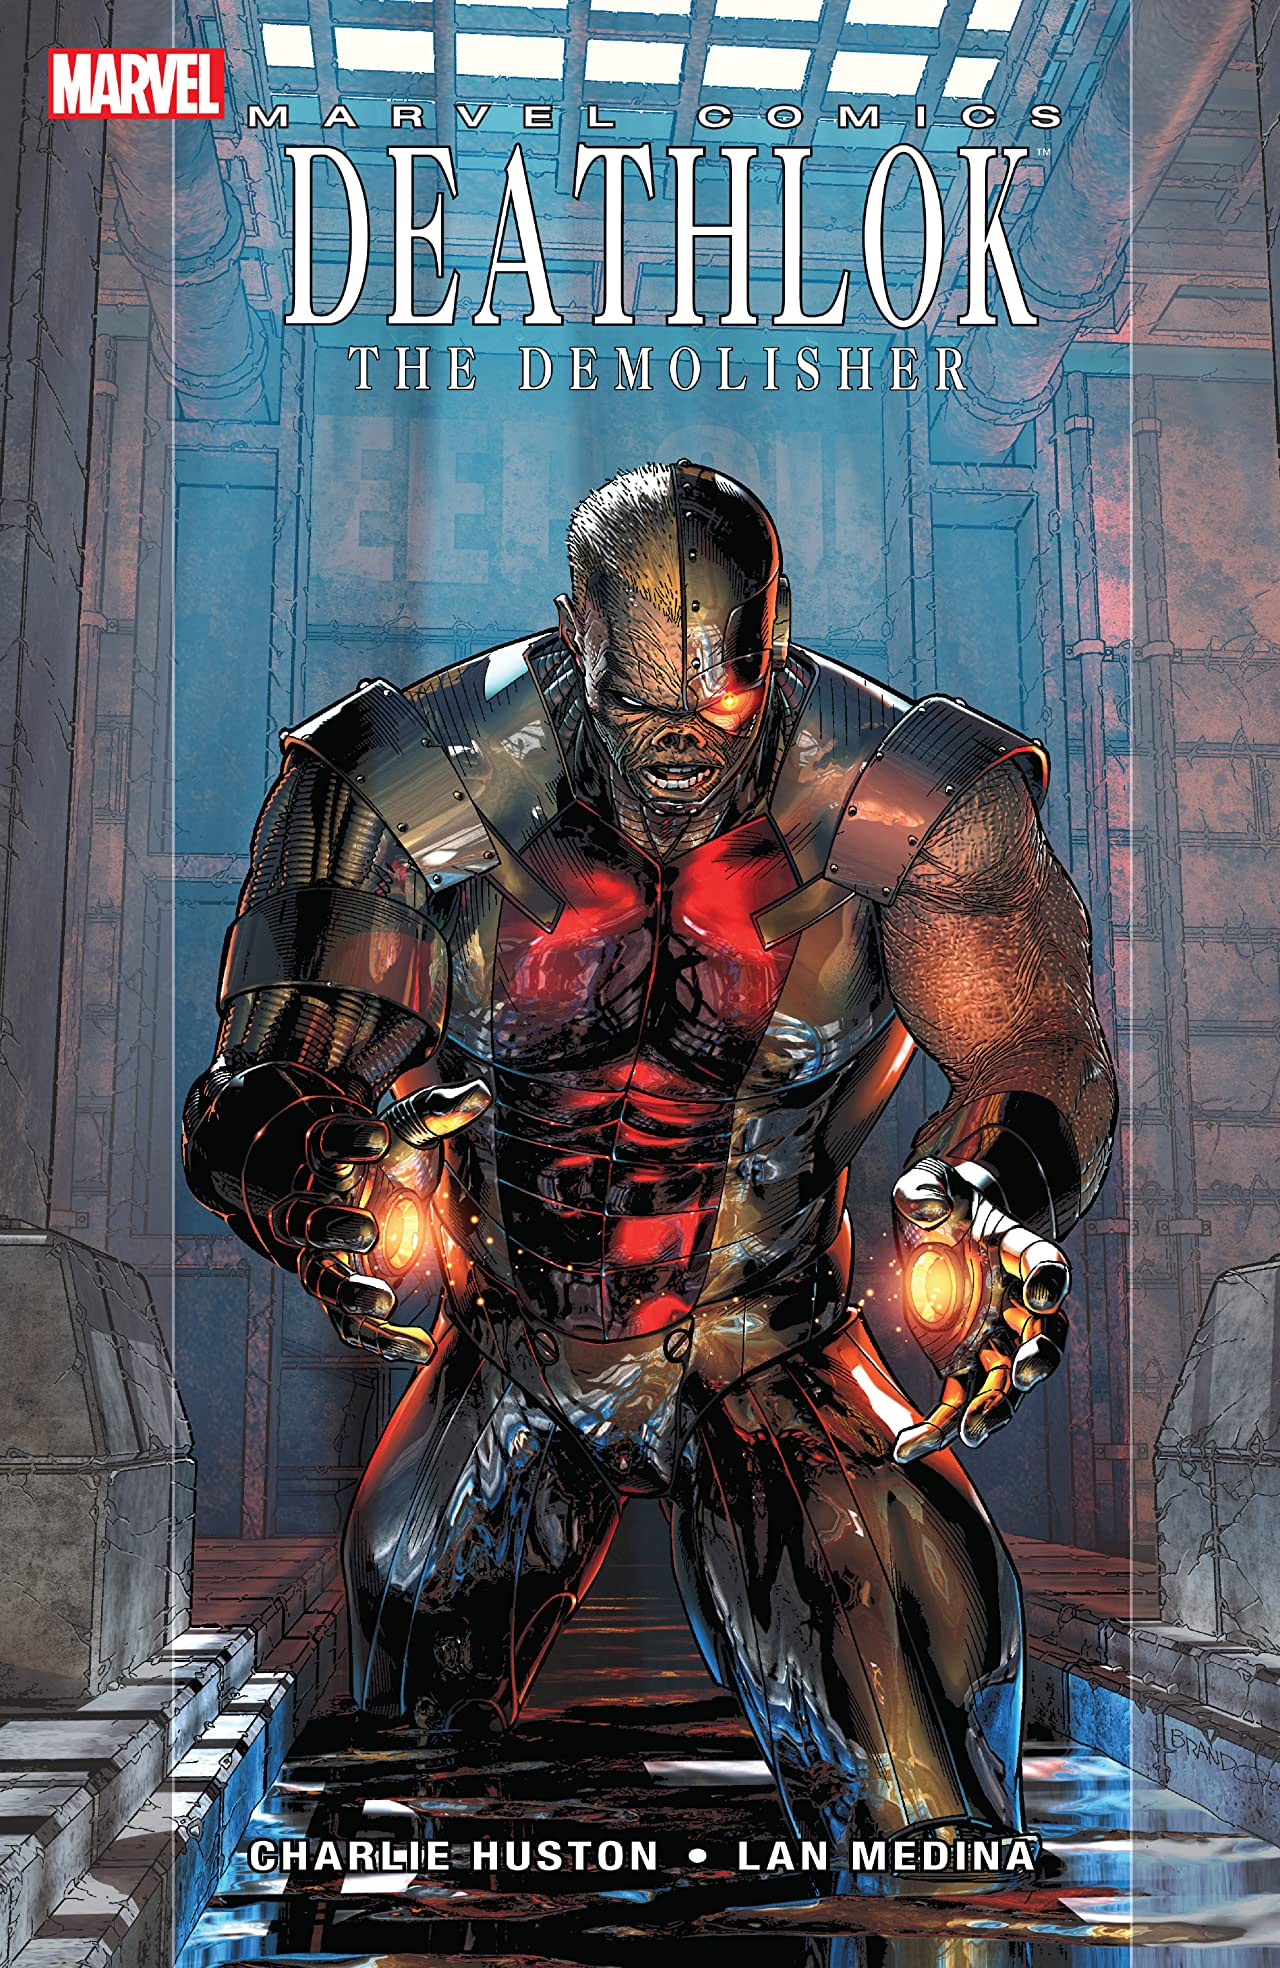 Deathlok: The Demolisher